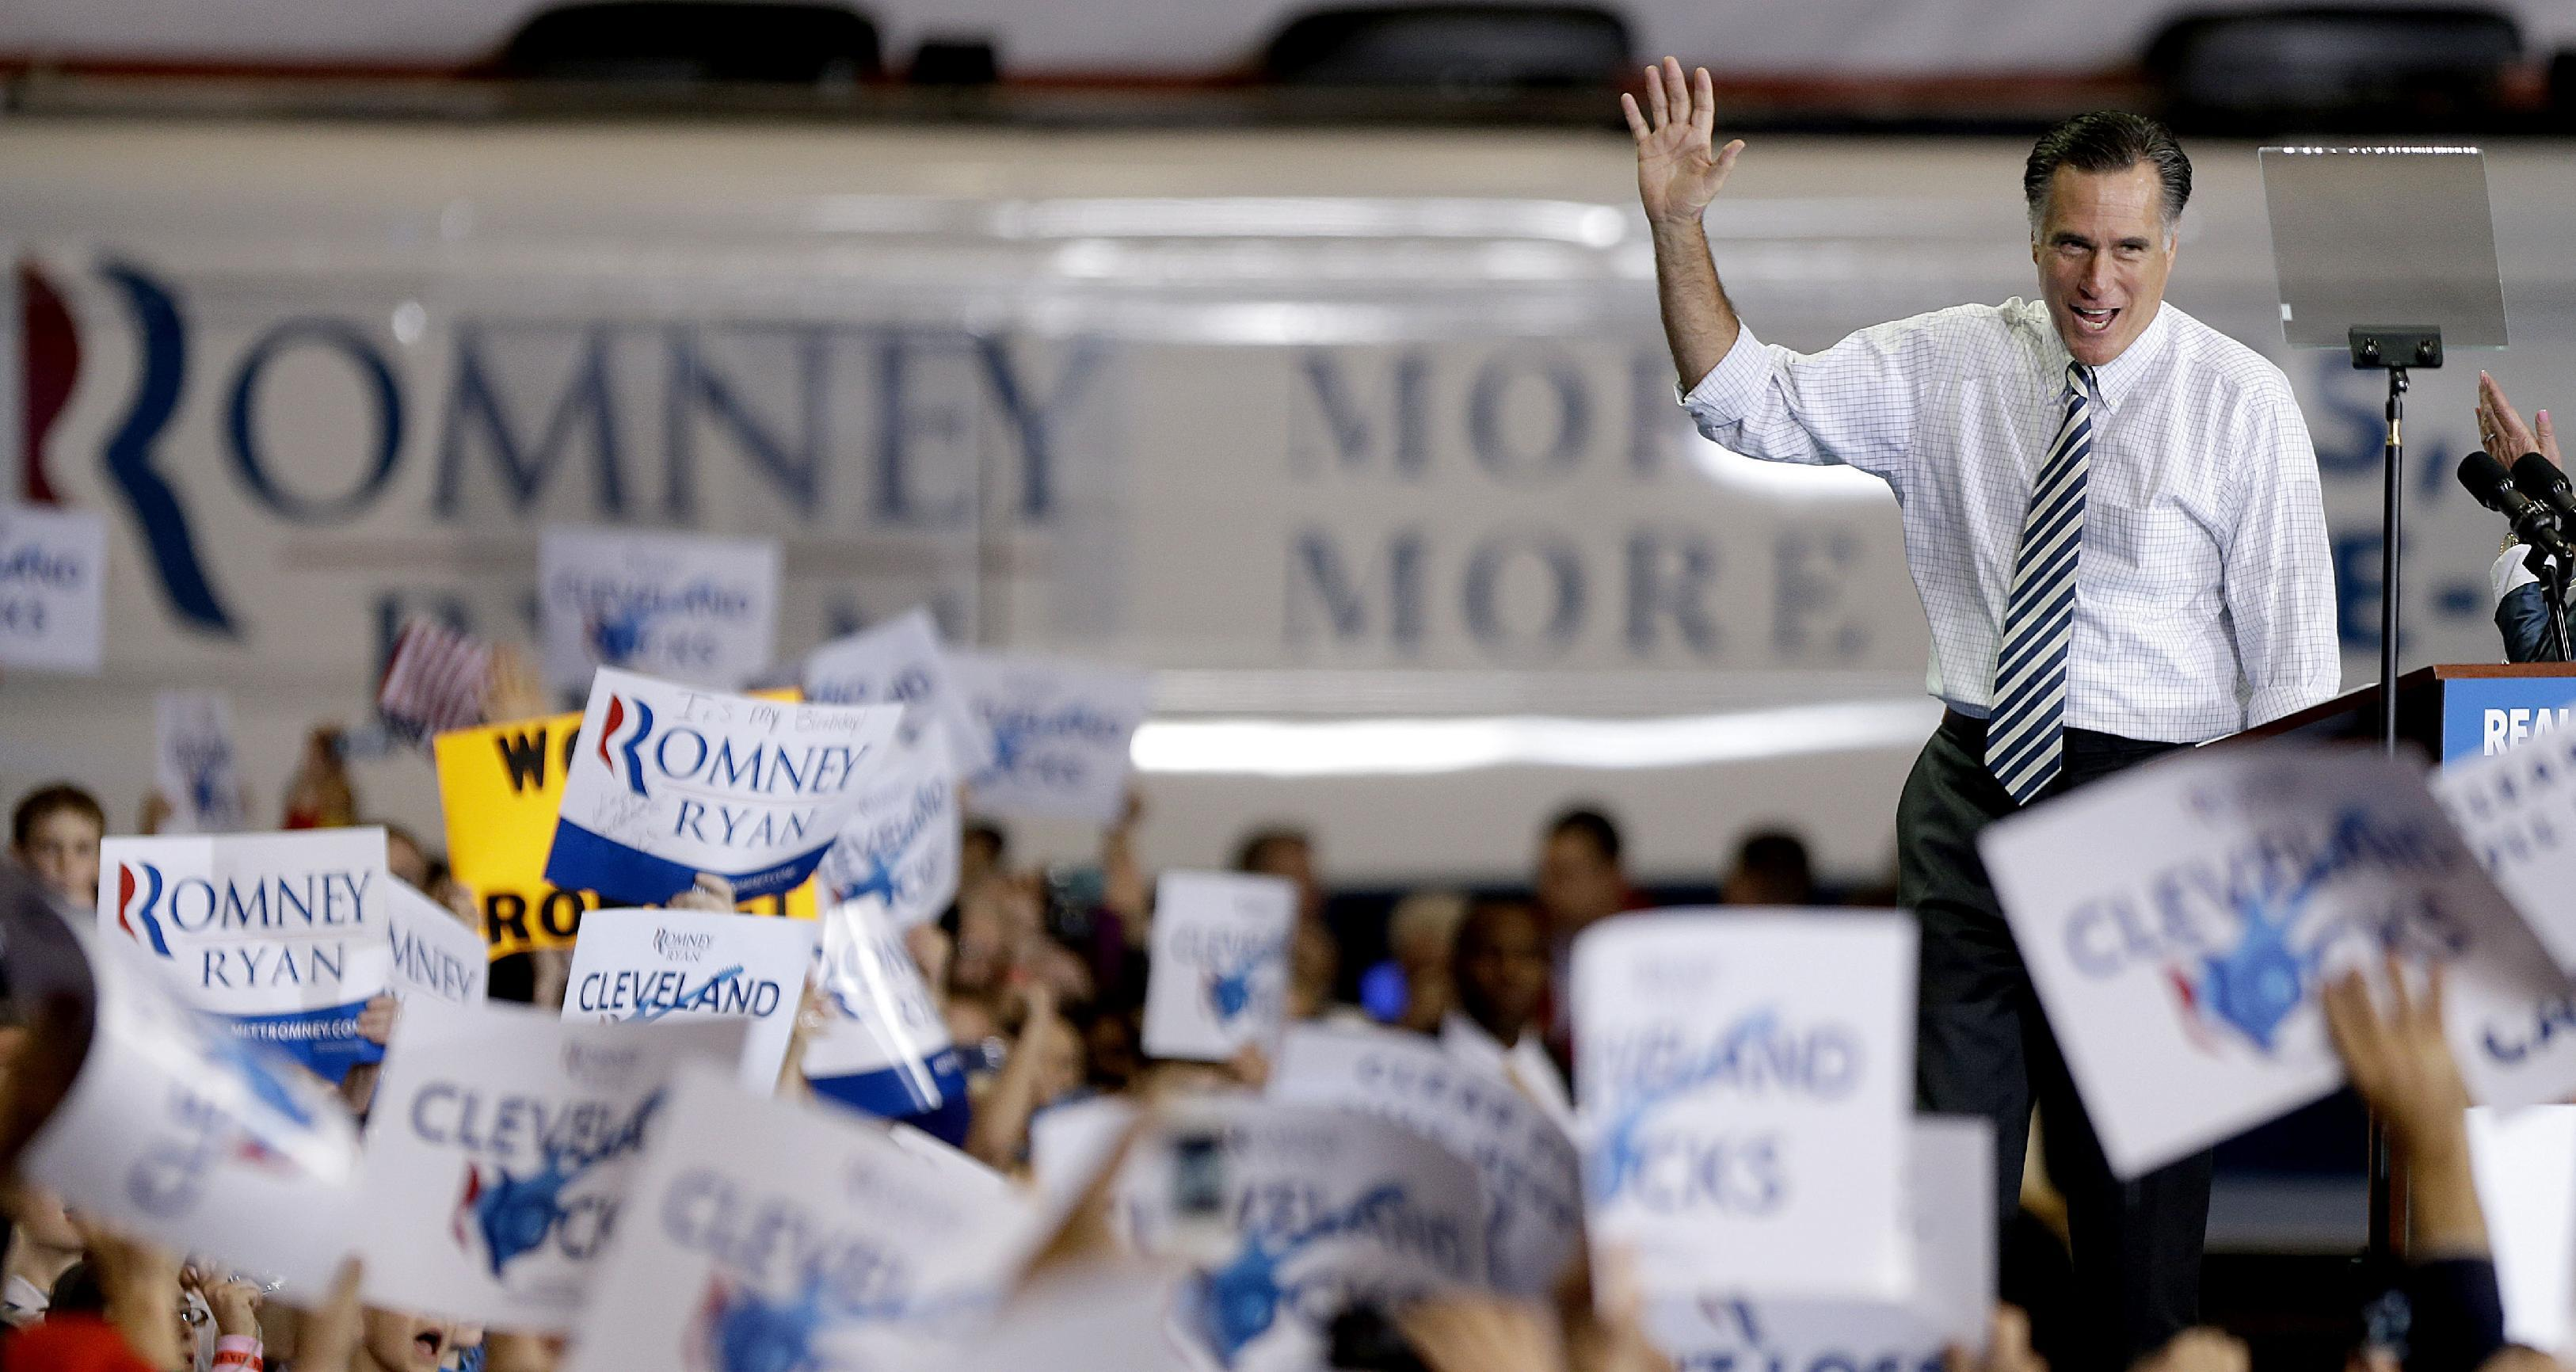 Horrified by Trump, Democrats getting nostalgic about Romney